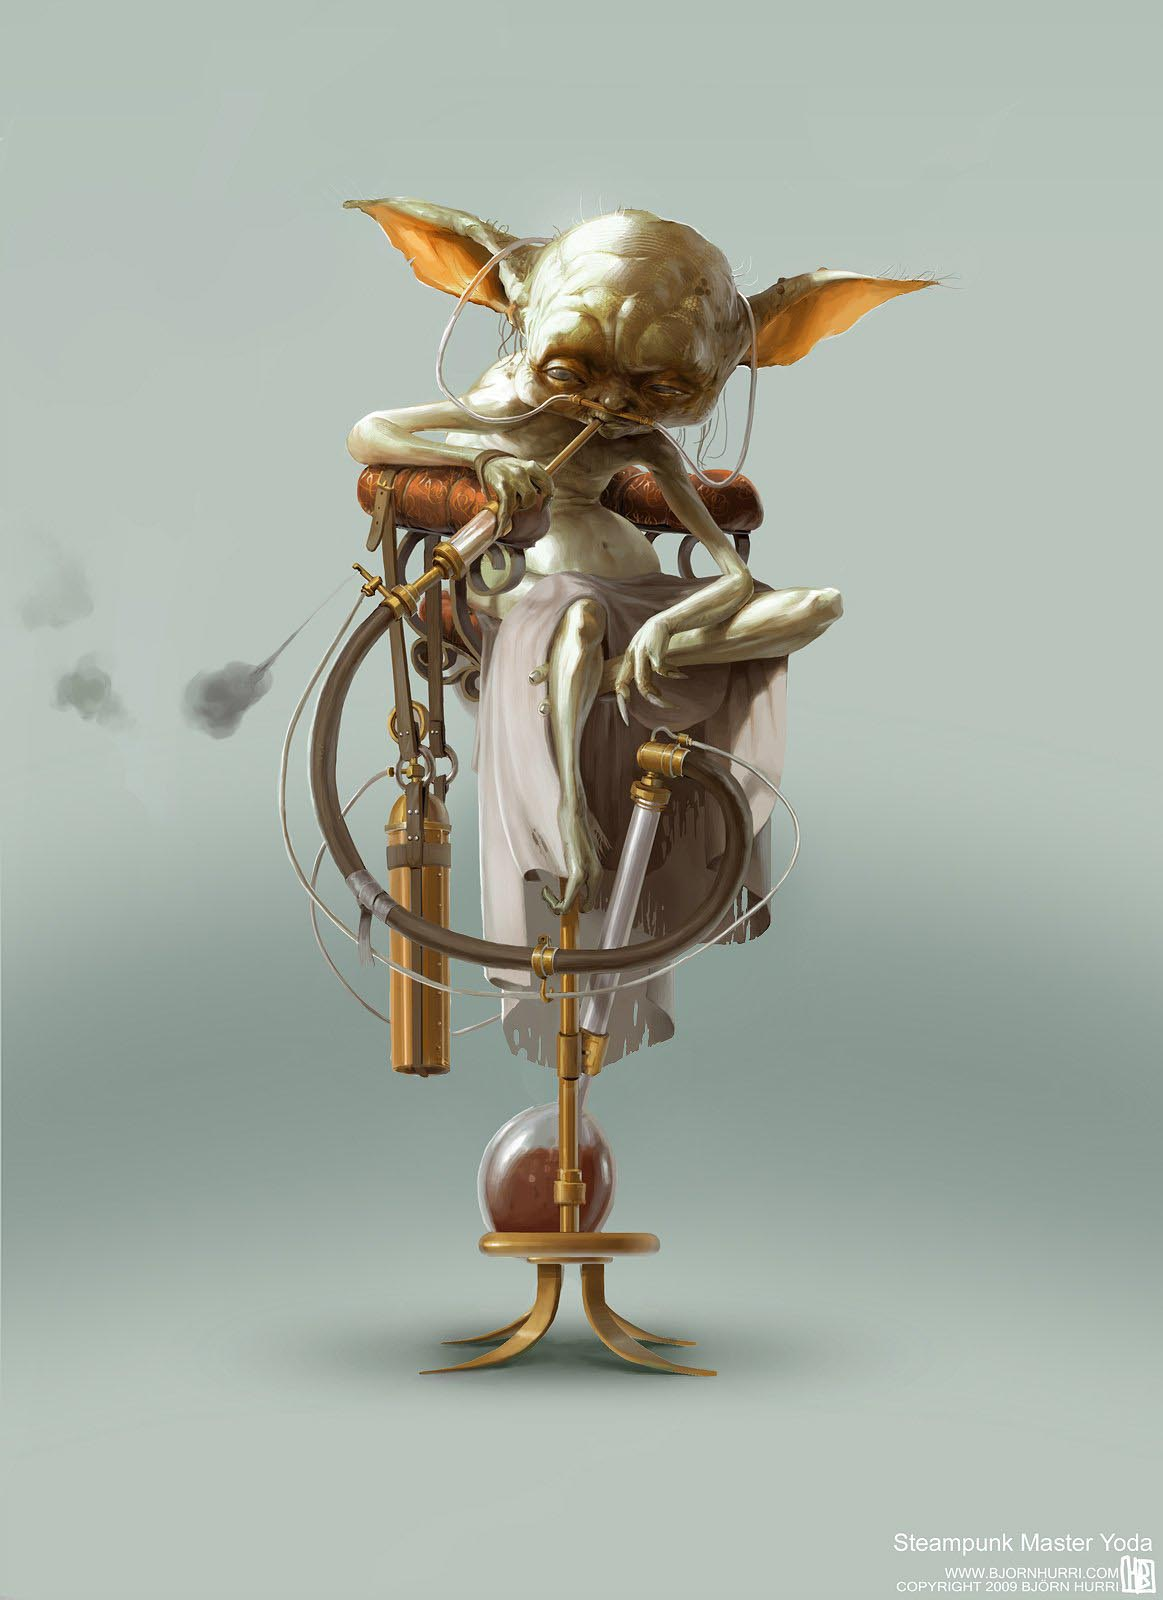 Steampunk Styled Star Wars Illustrations Gadgetsin